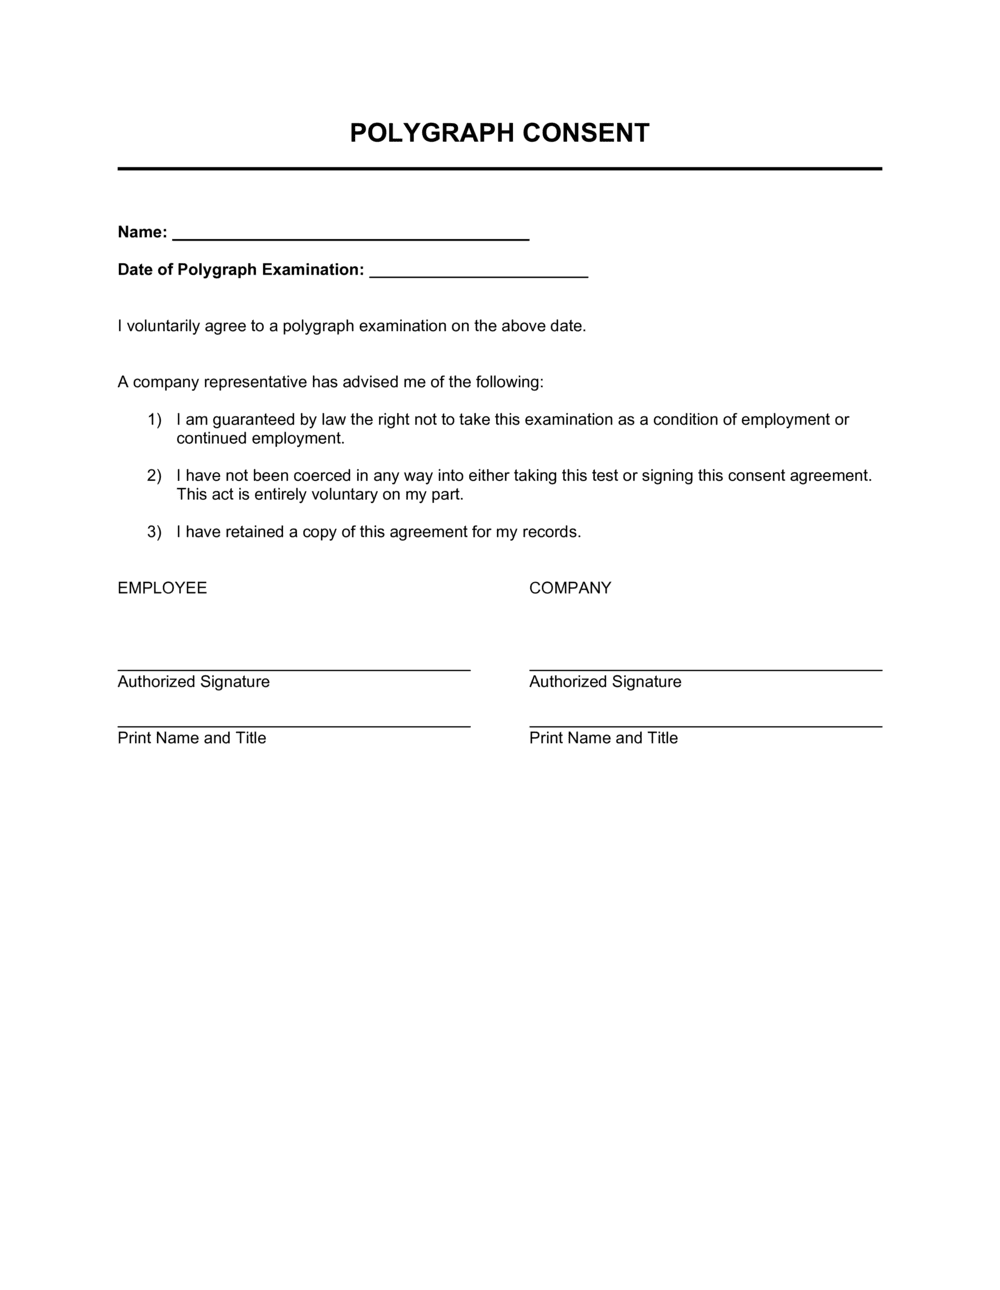 Business-in-a-Box's Polygraph Consent Template